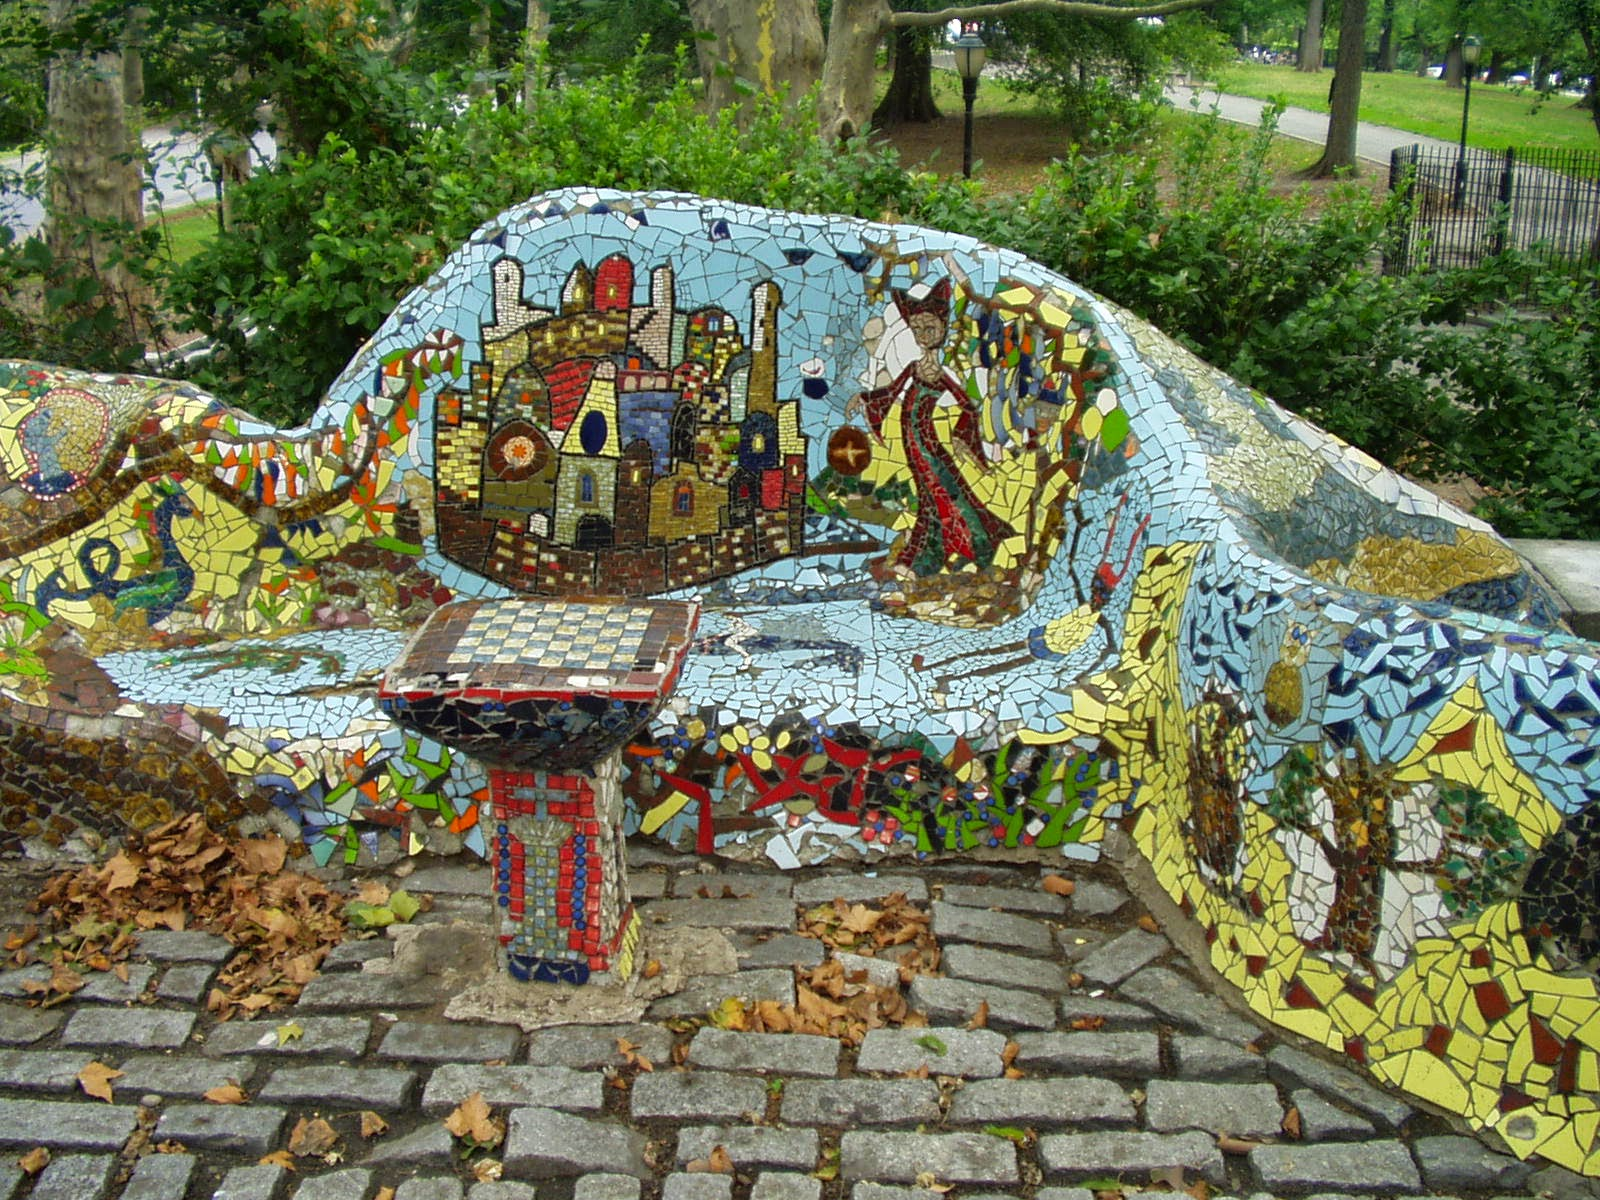 Gaudi in new york a broken tile mosaic masterpiece in riverside gaudi in new york a broken tile mosaic masterpiece in riverside park dailygadgetfo Image collections